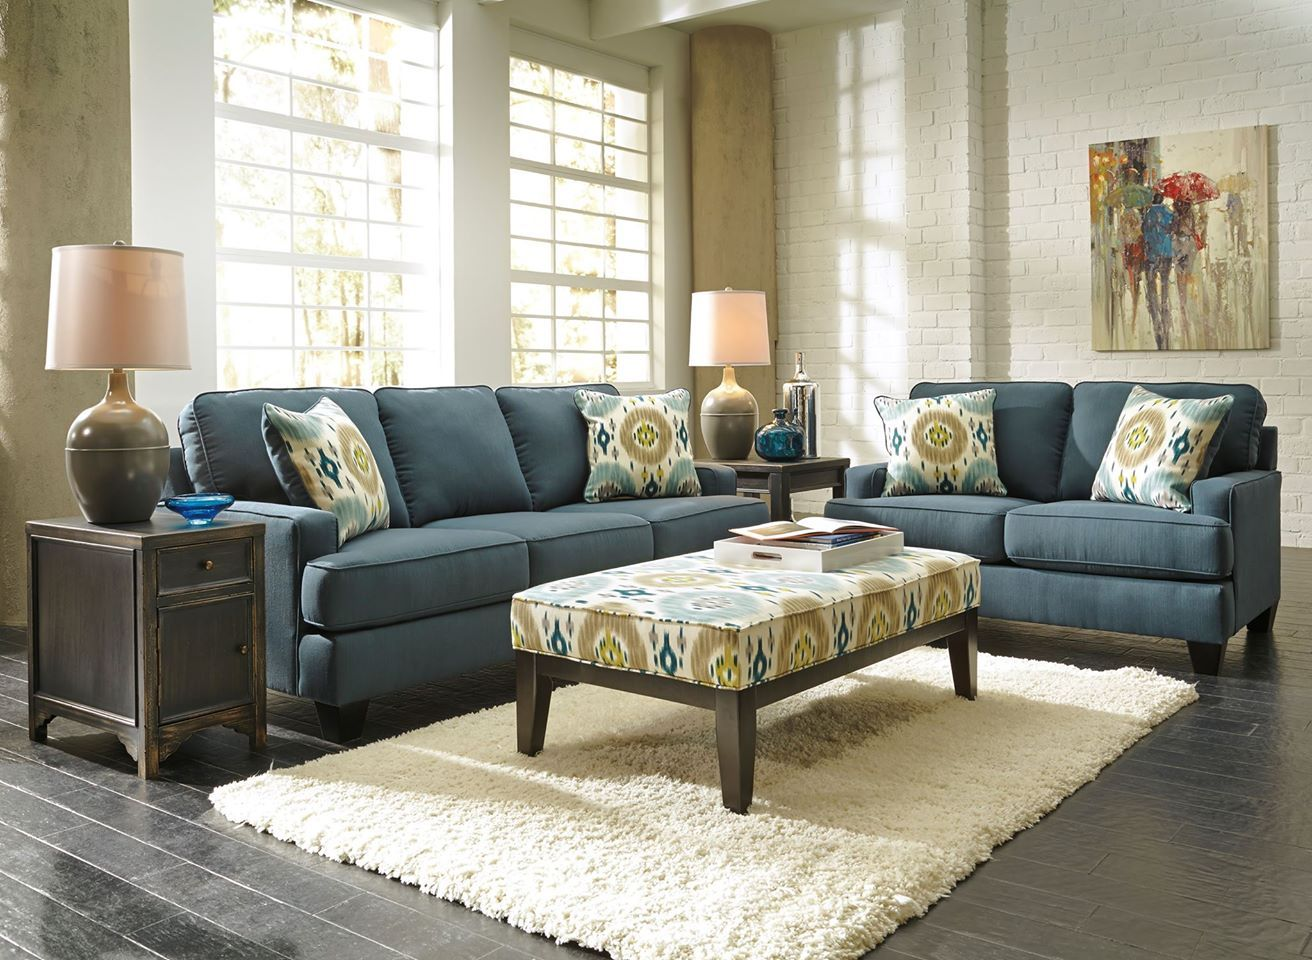 Best Beautiful Highland Sofa Available At Urban Home Living 400 x 300